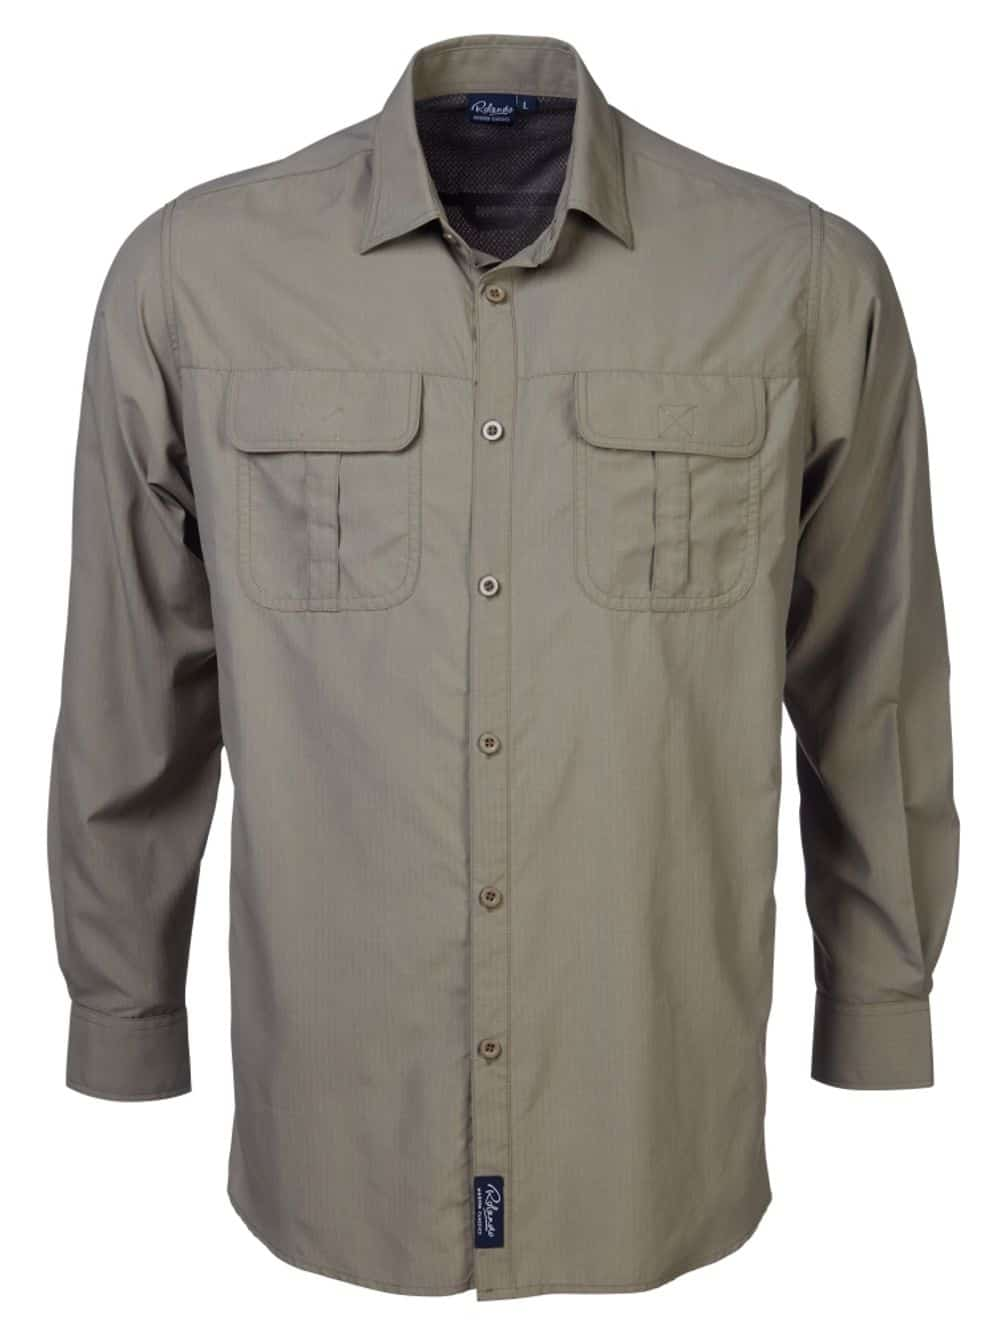 L/Sleeve Safari Shirt With Sleeve Tabs Lounge Shirts and Blouses